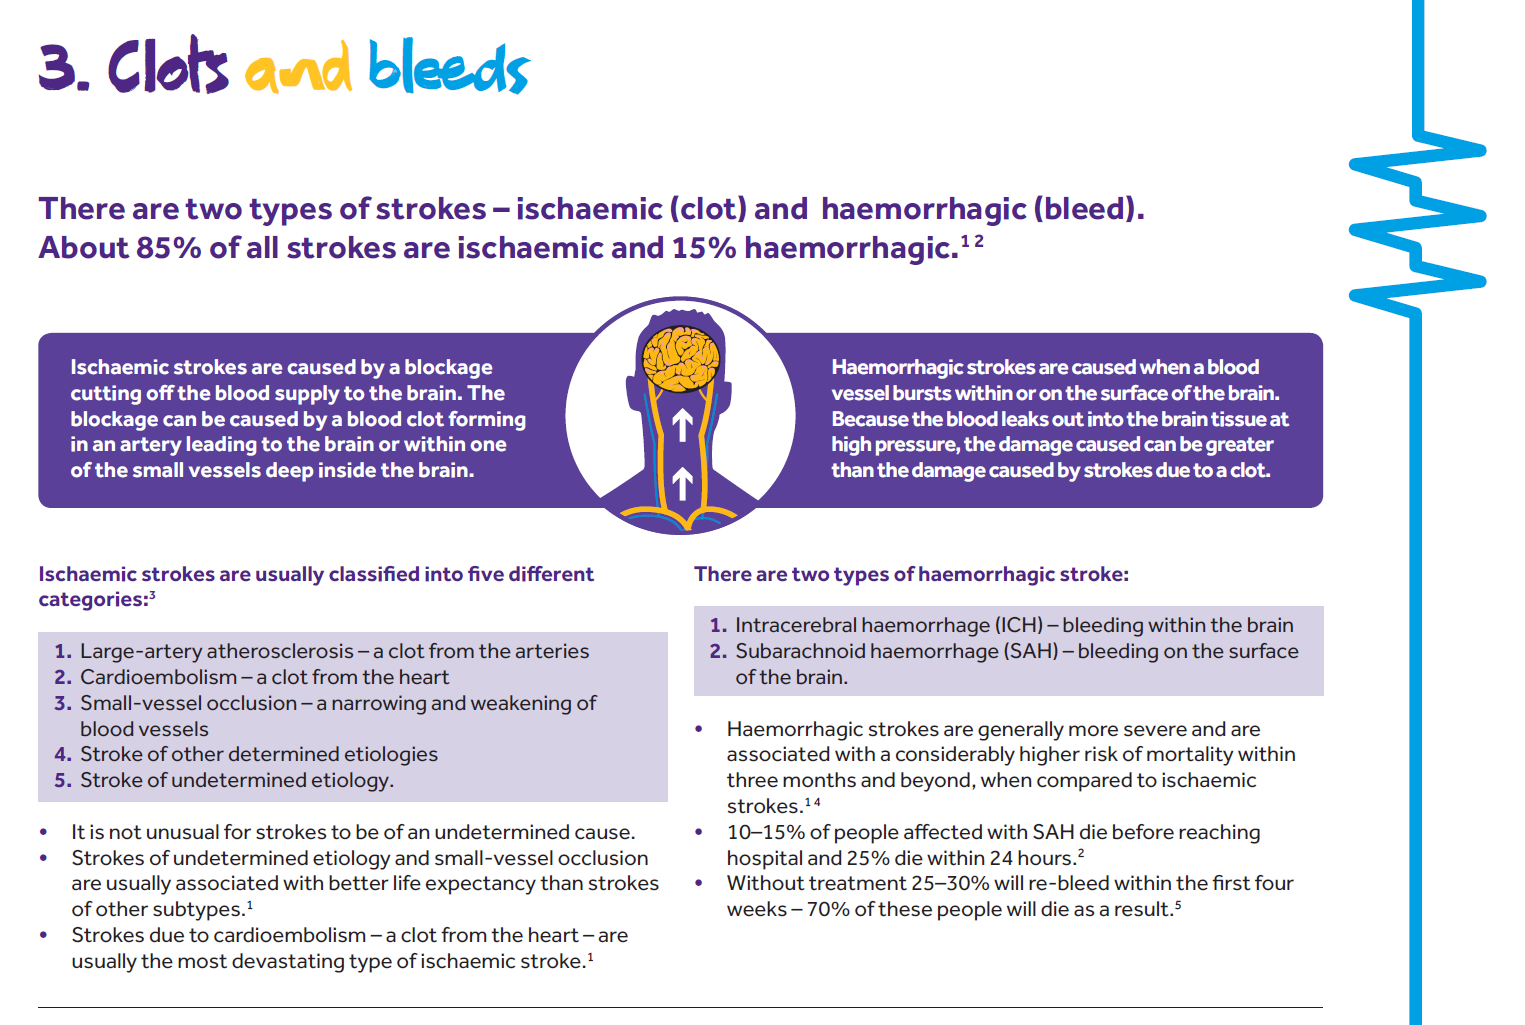 Ischaemic stroke are usually classified into five different categories: 1. Large-artery atherosclerosis-a clot from the arteries 2. Cardioembolism-a clot from the heart 3.